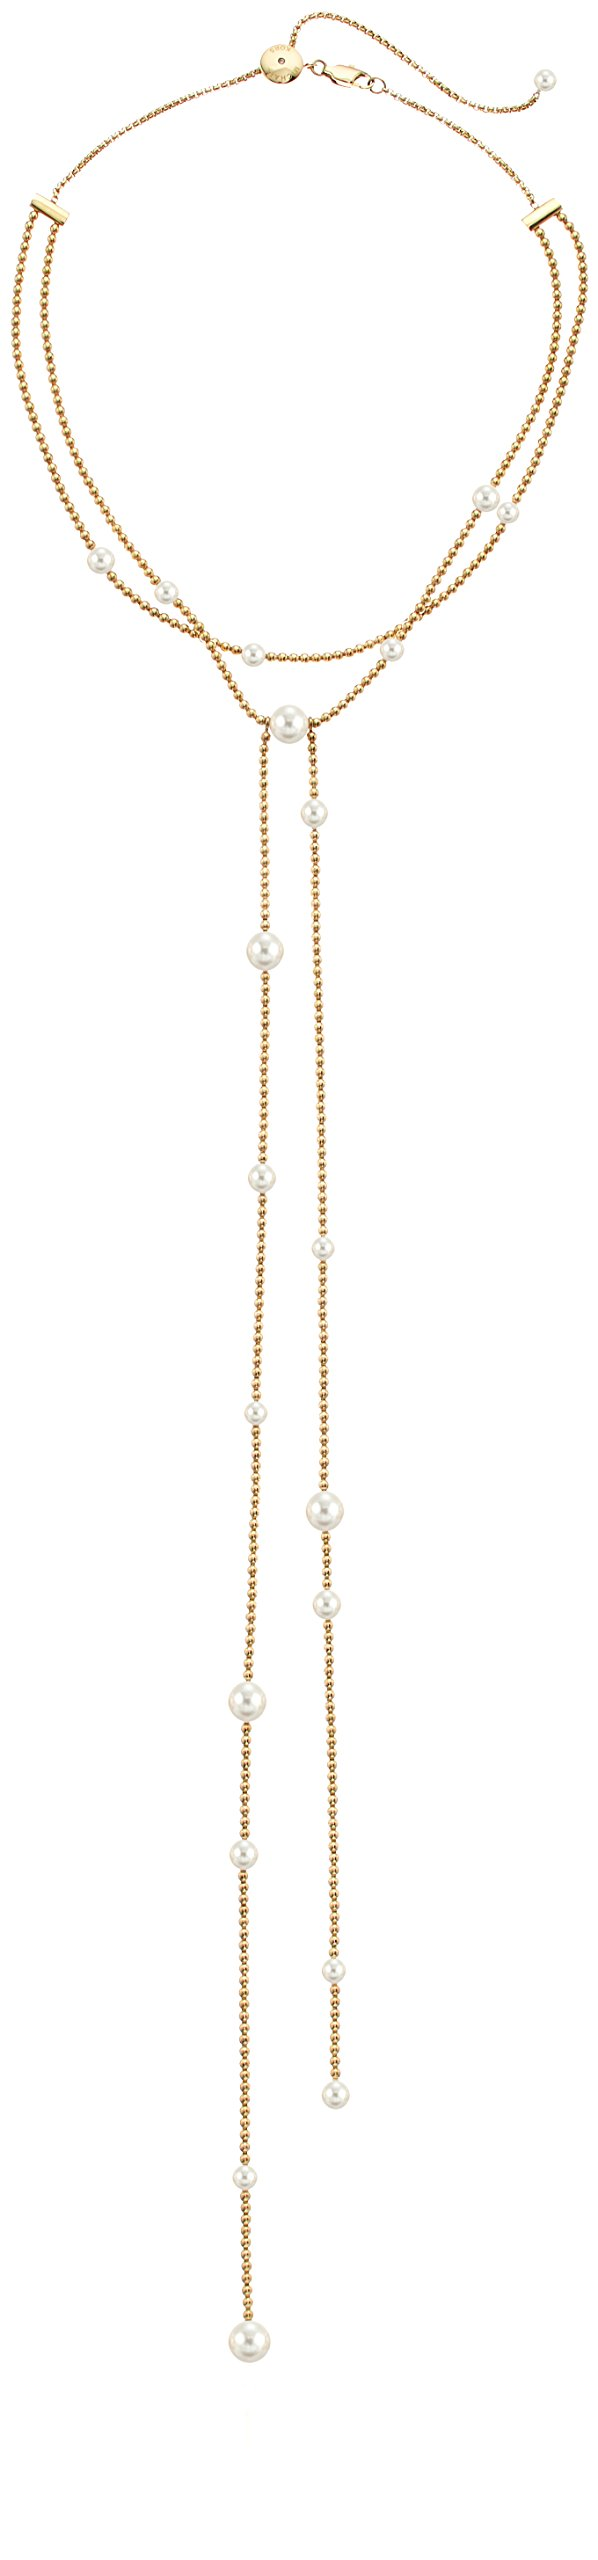 Michael Kors Modern Classic Gold-Tone, White Pearl and Crystal Charm Lariat Slider Choker Necklace, 22''